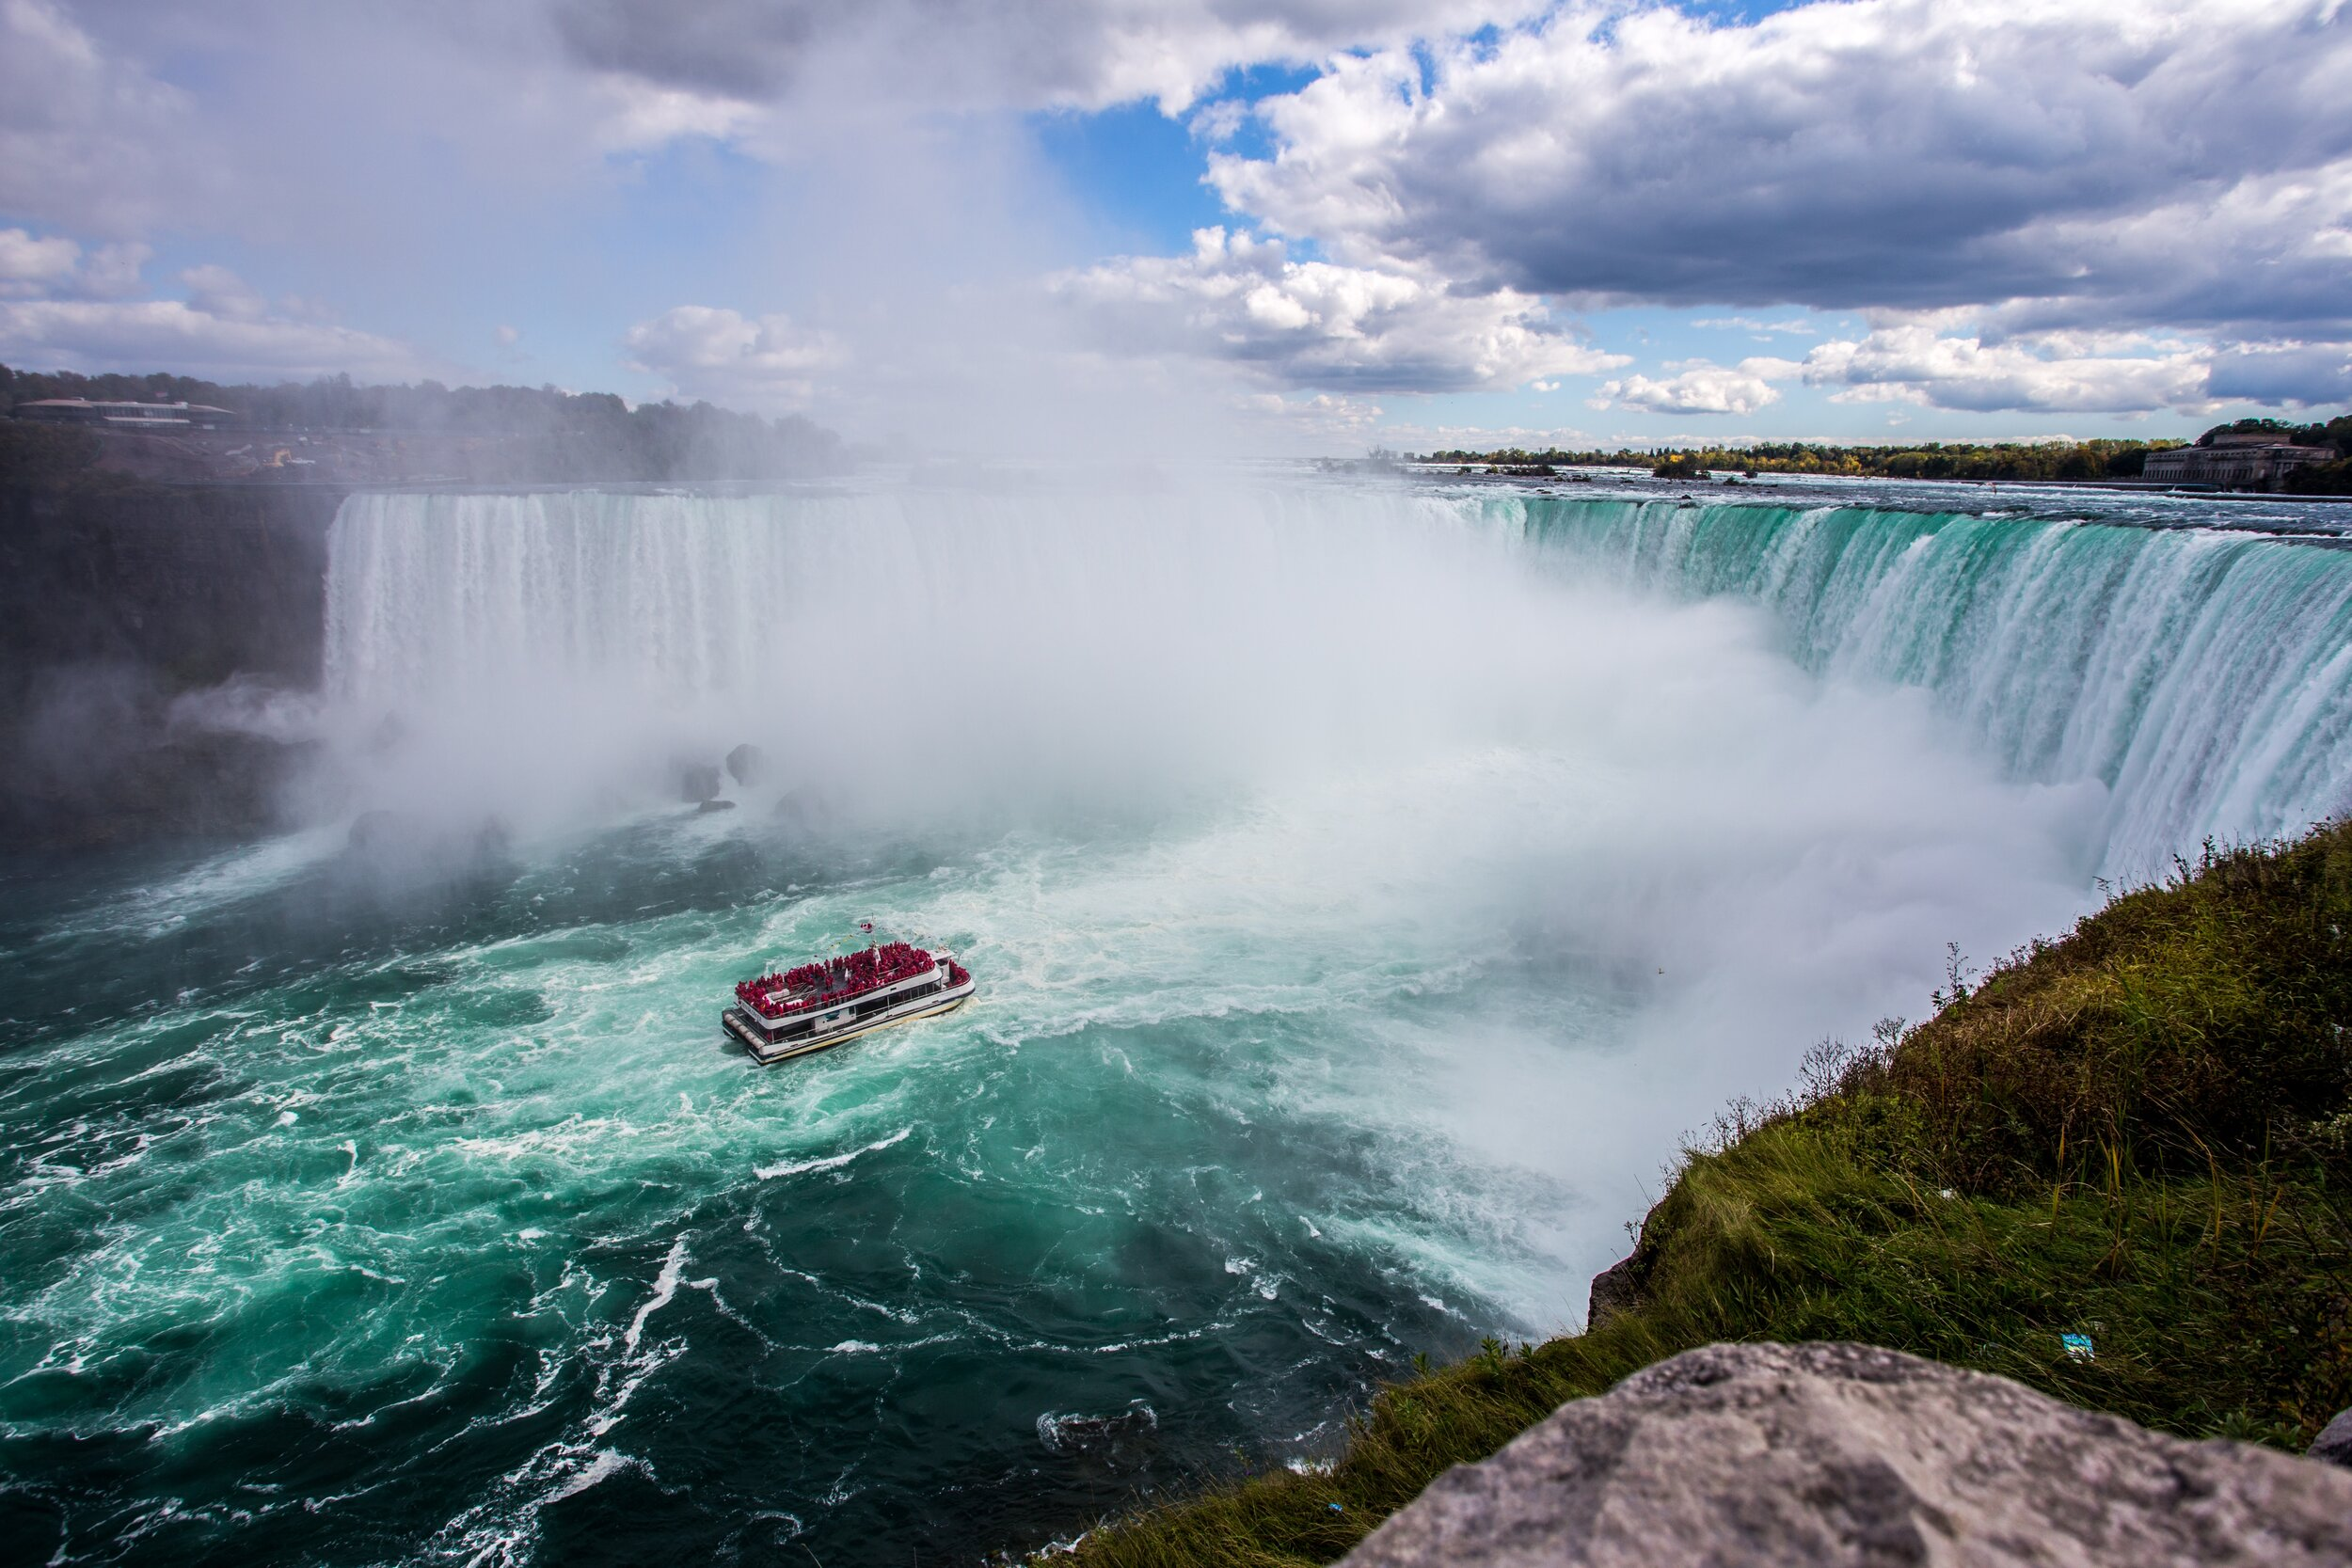 On Oct. 24, 1901, 118 years ago, Annie Edson Taylor took the first barrel ride down Niagara Falls.  Photo by  Kalen Emsley  on  Unsplash .